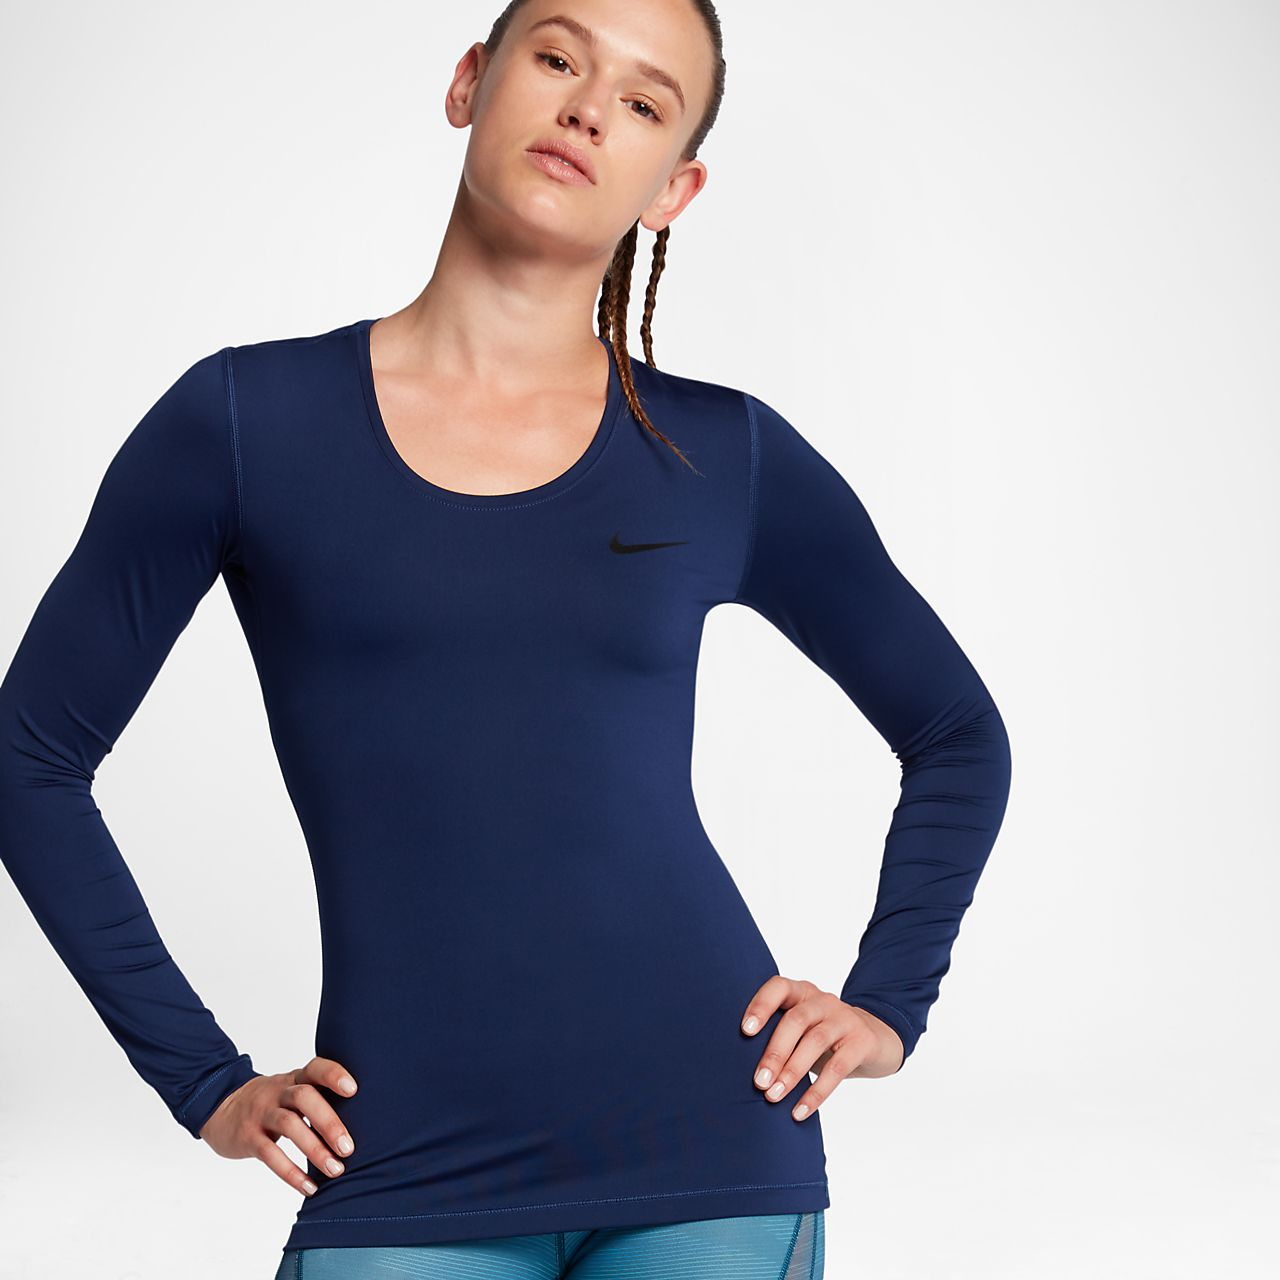 Nike Pro Women's Long Sleeve Training Top (Compressive Fit). Nike.com